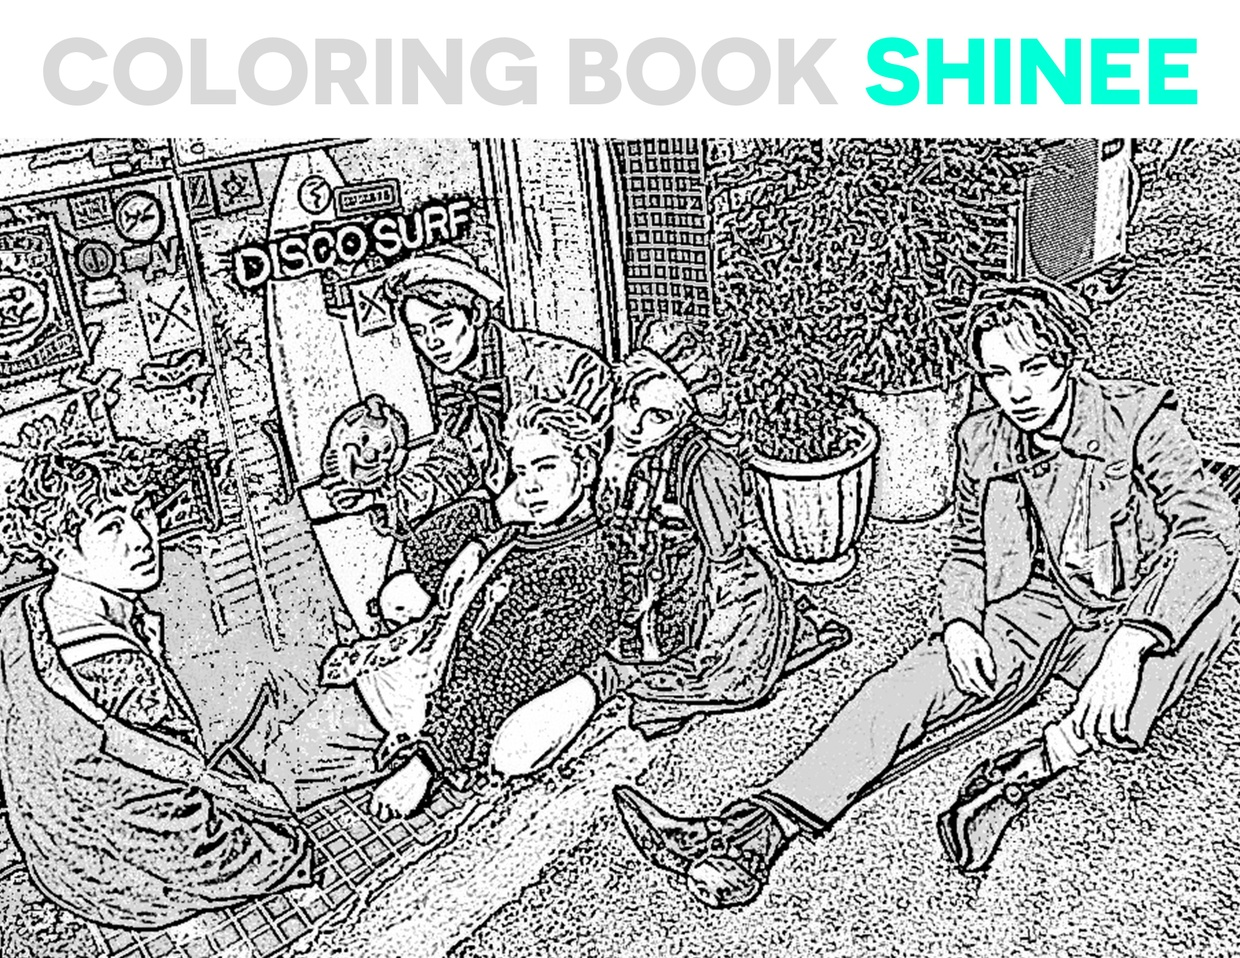 Coloring Book For Adults Ll SHINee Kpop